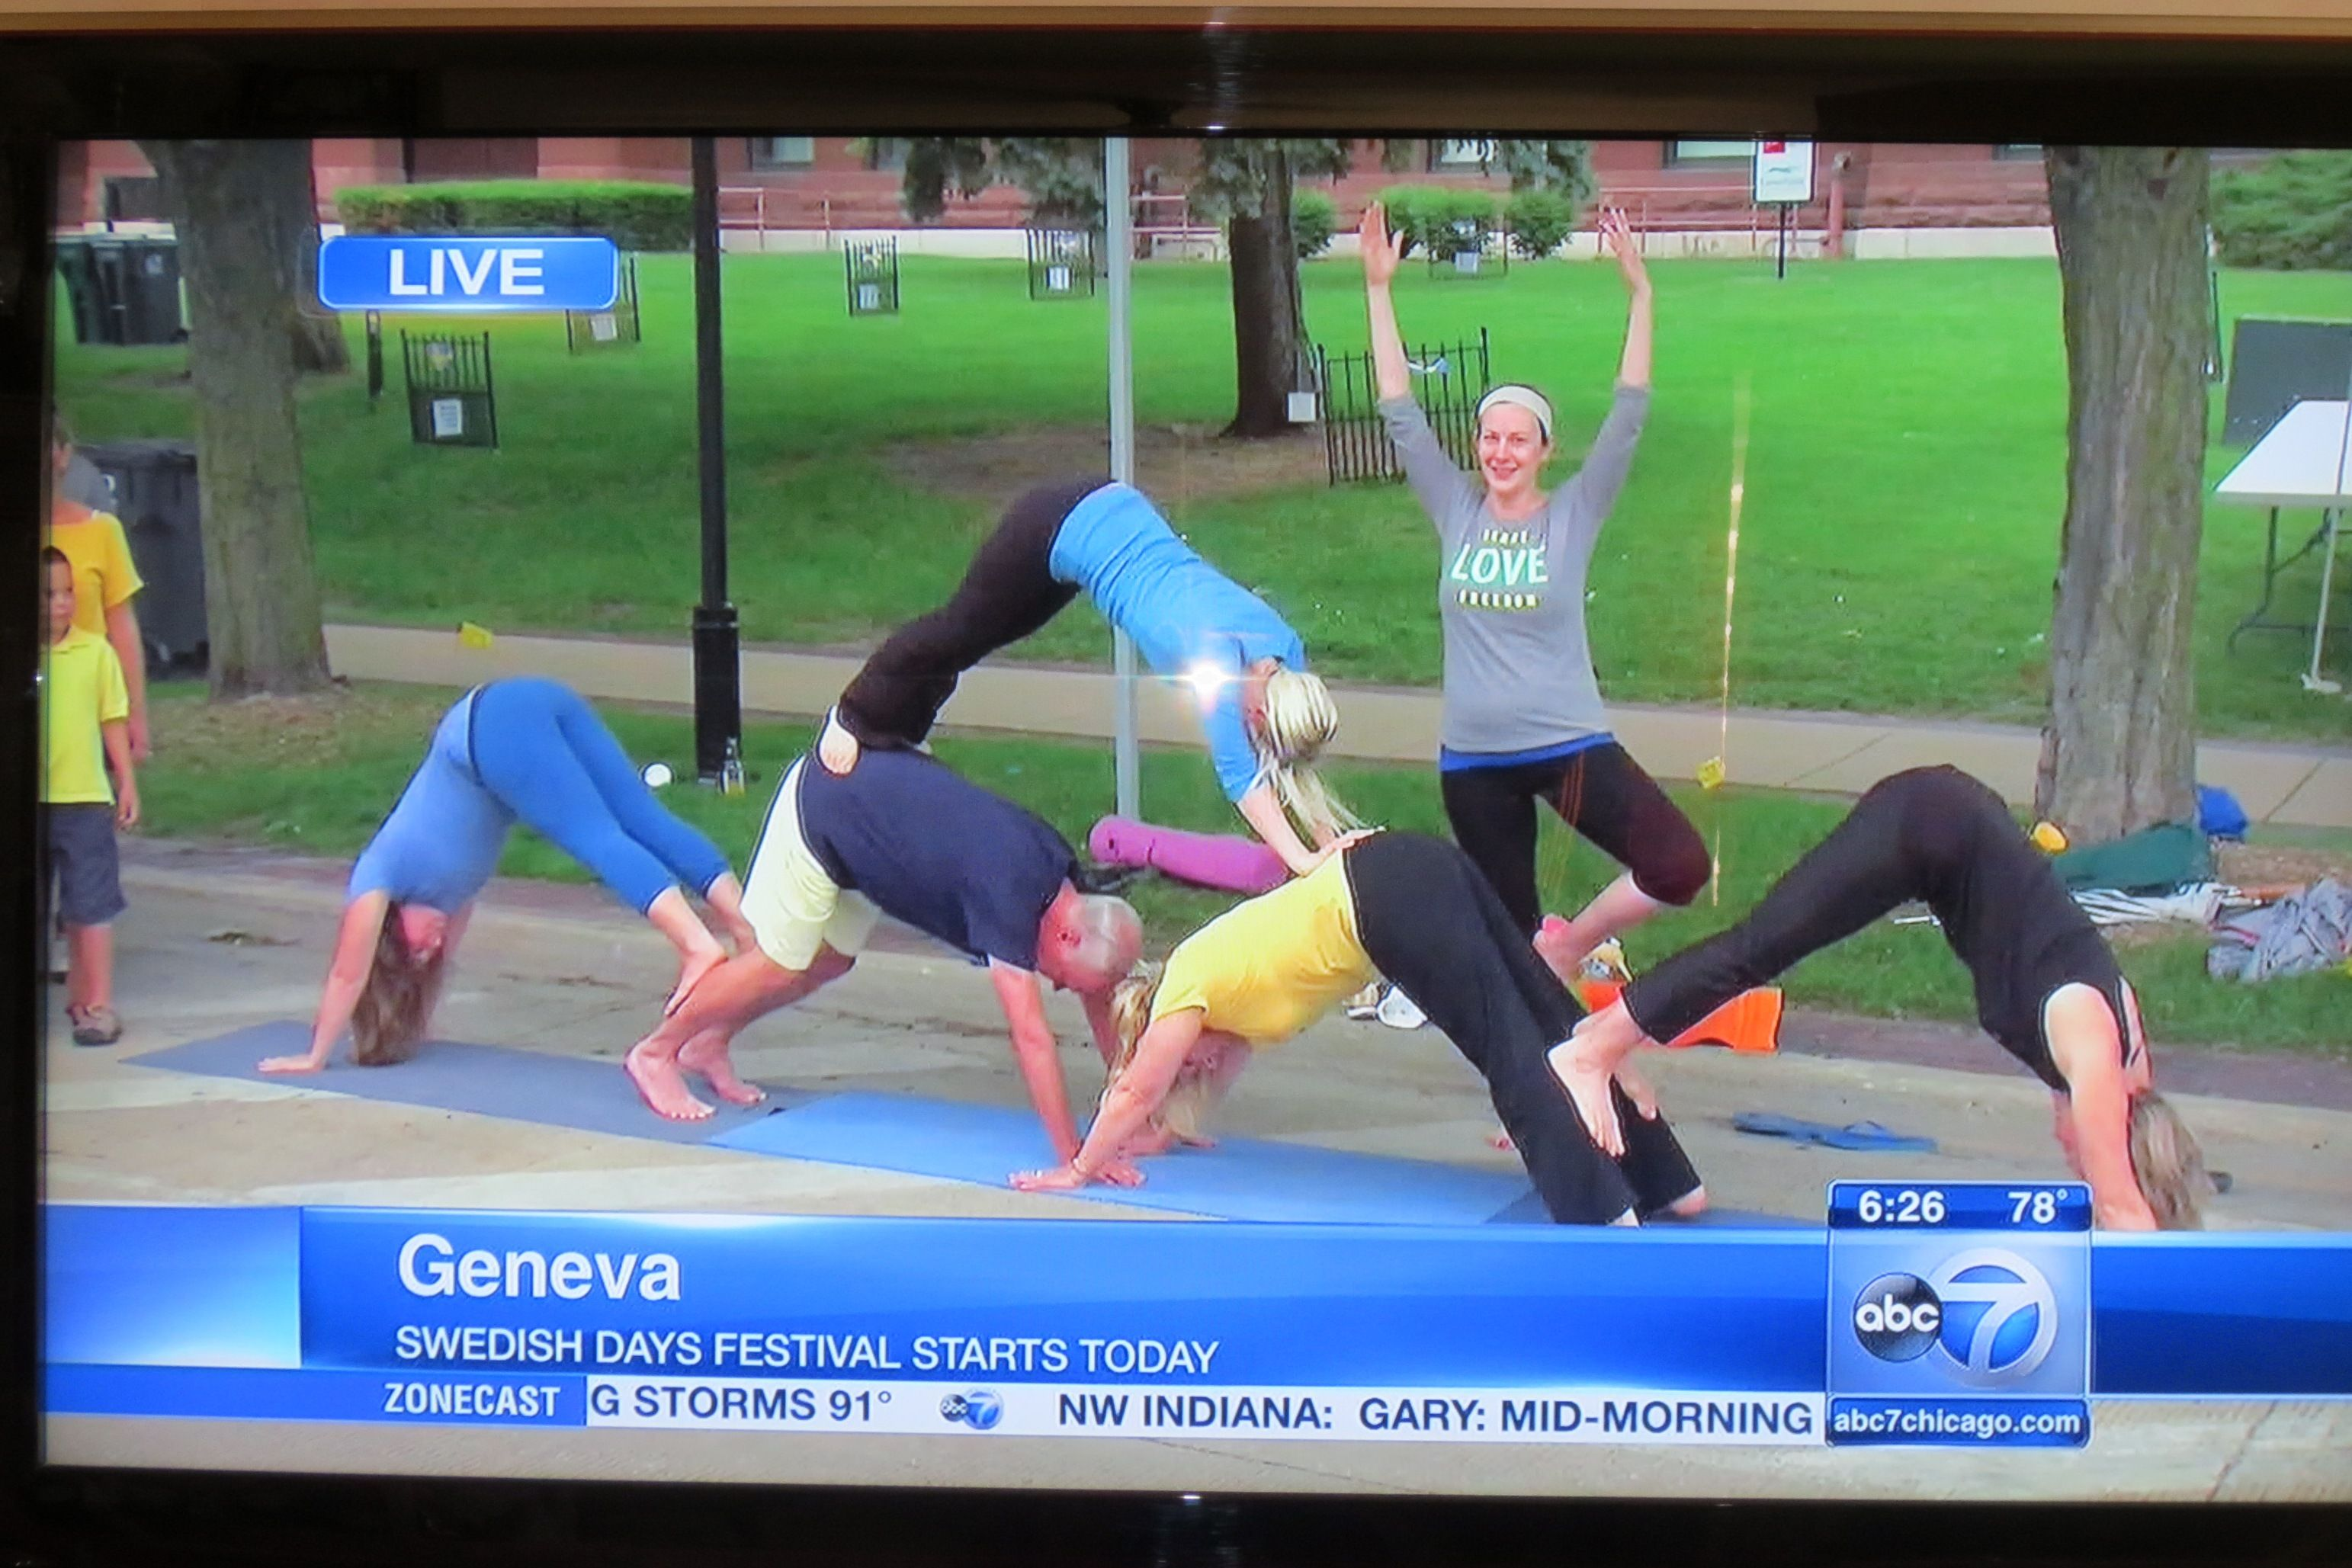 Kicking off Geneva's annual Swedish Days on ABC Channel 7 with Happy Place students having fun with yoga in front of the historic courthouse!